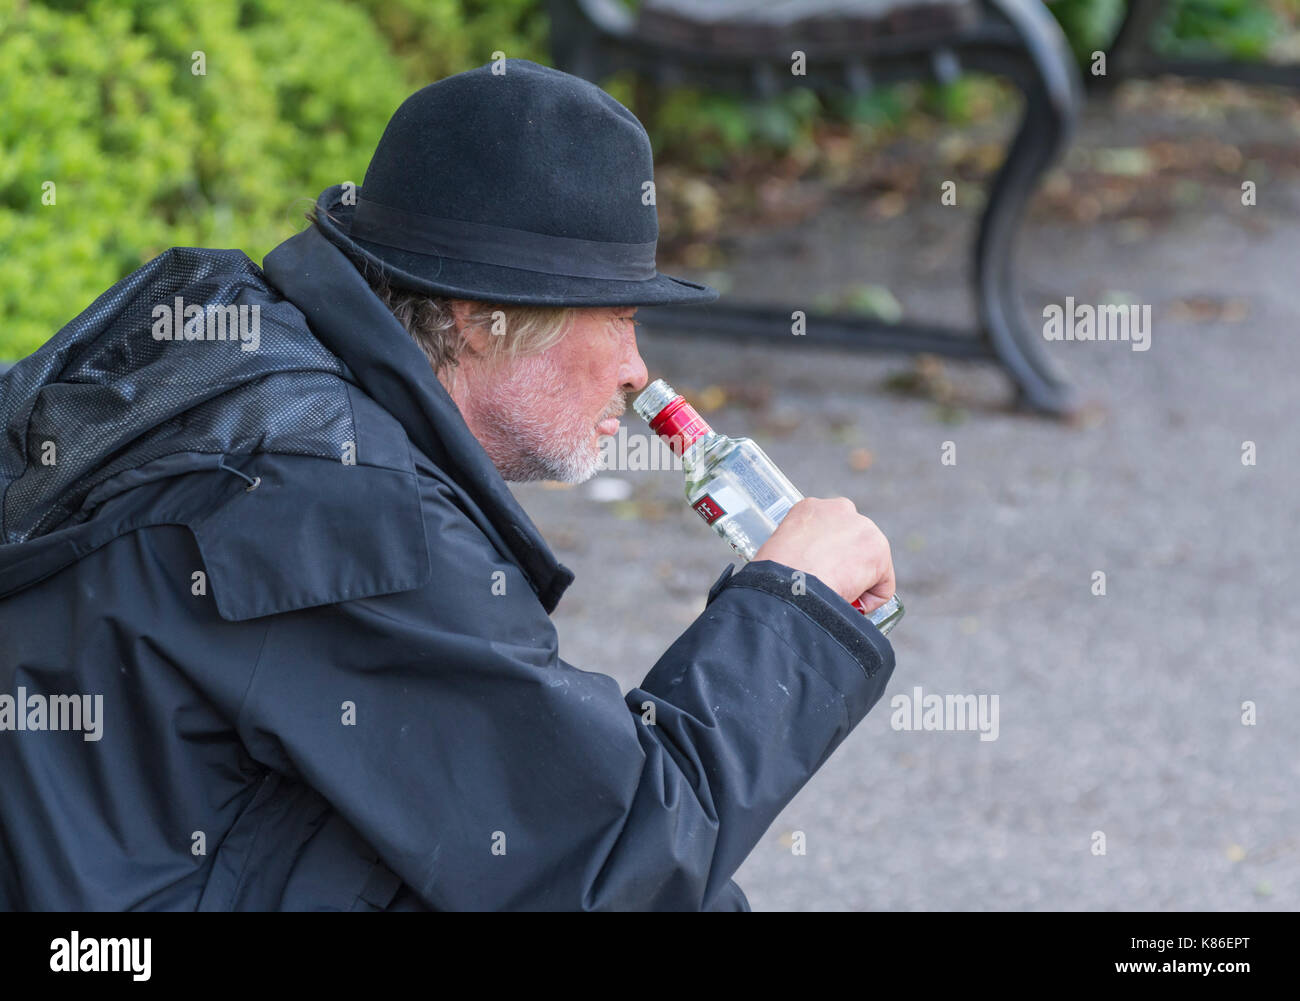 Man outside drinking in the daytime, appearing to be homeless, in the South of England, UK. Man drowning his sorrows. Stock Photo